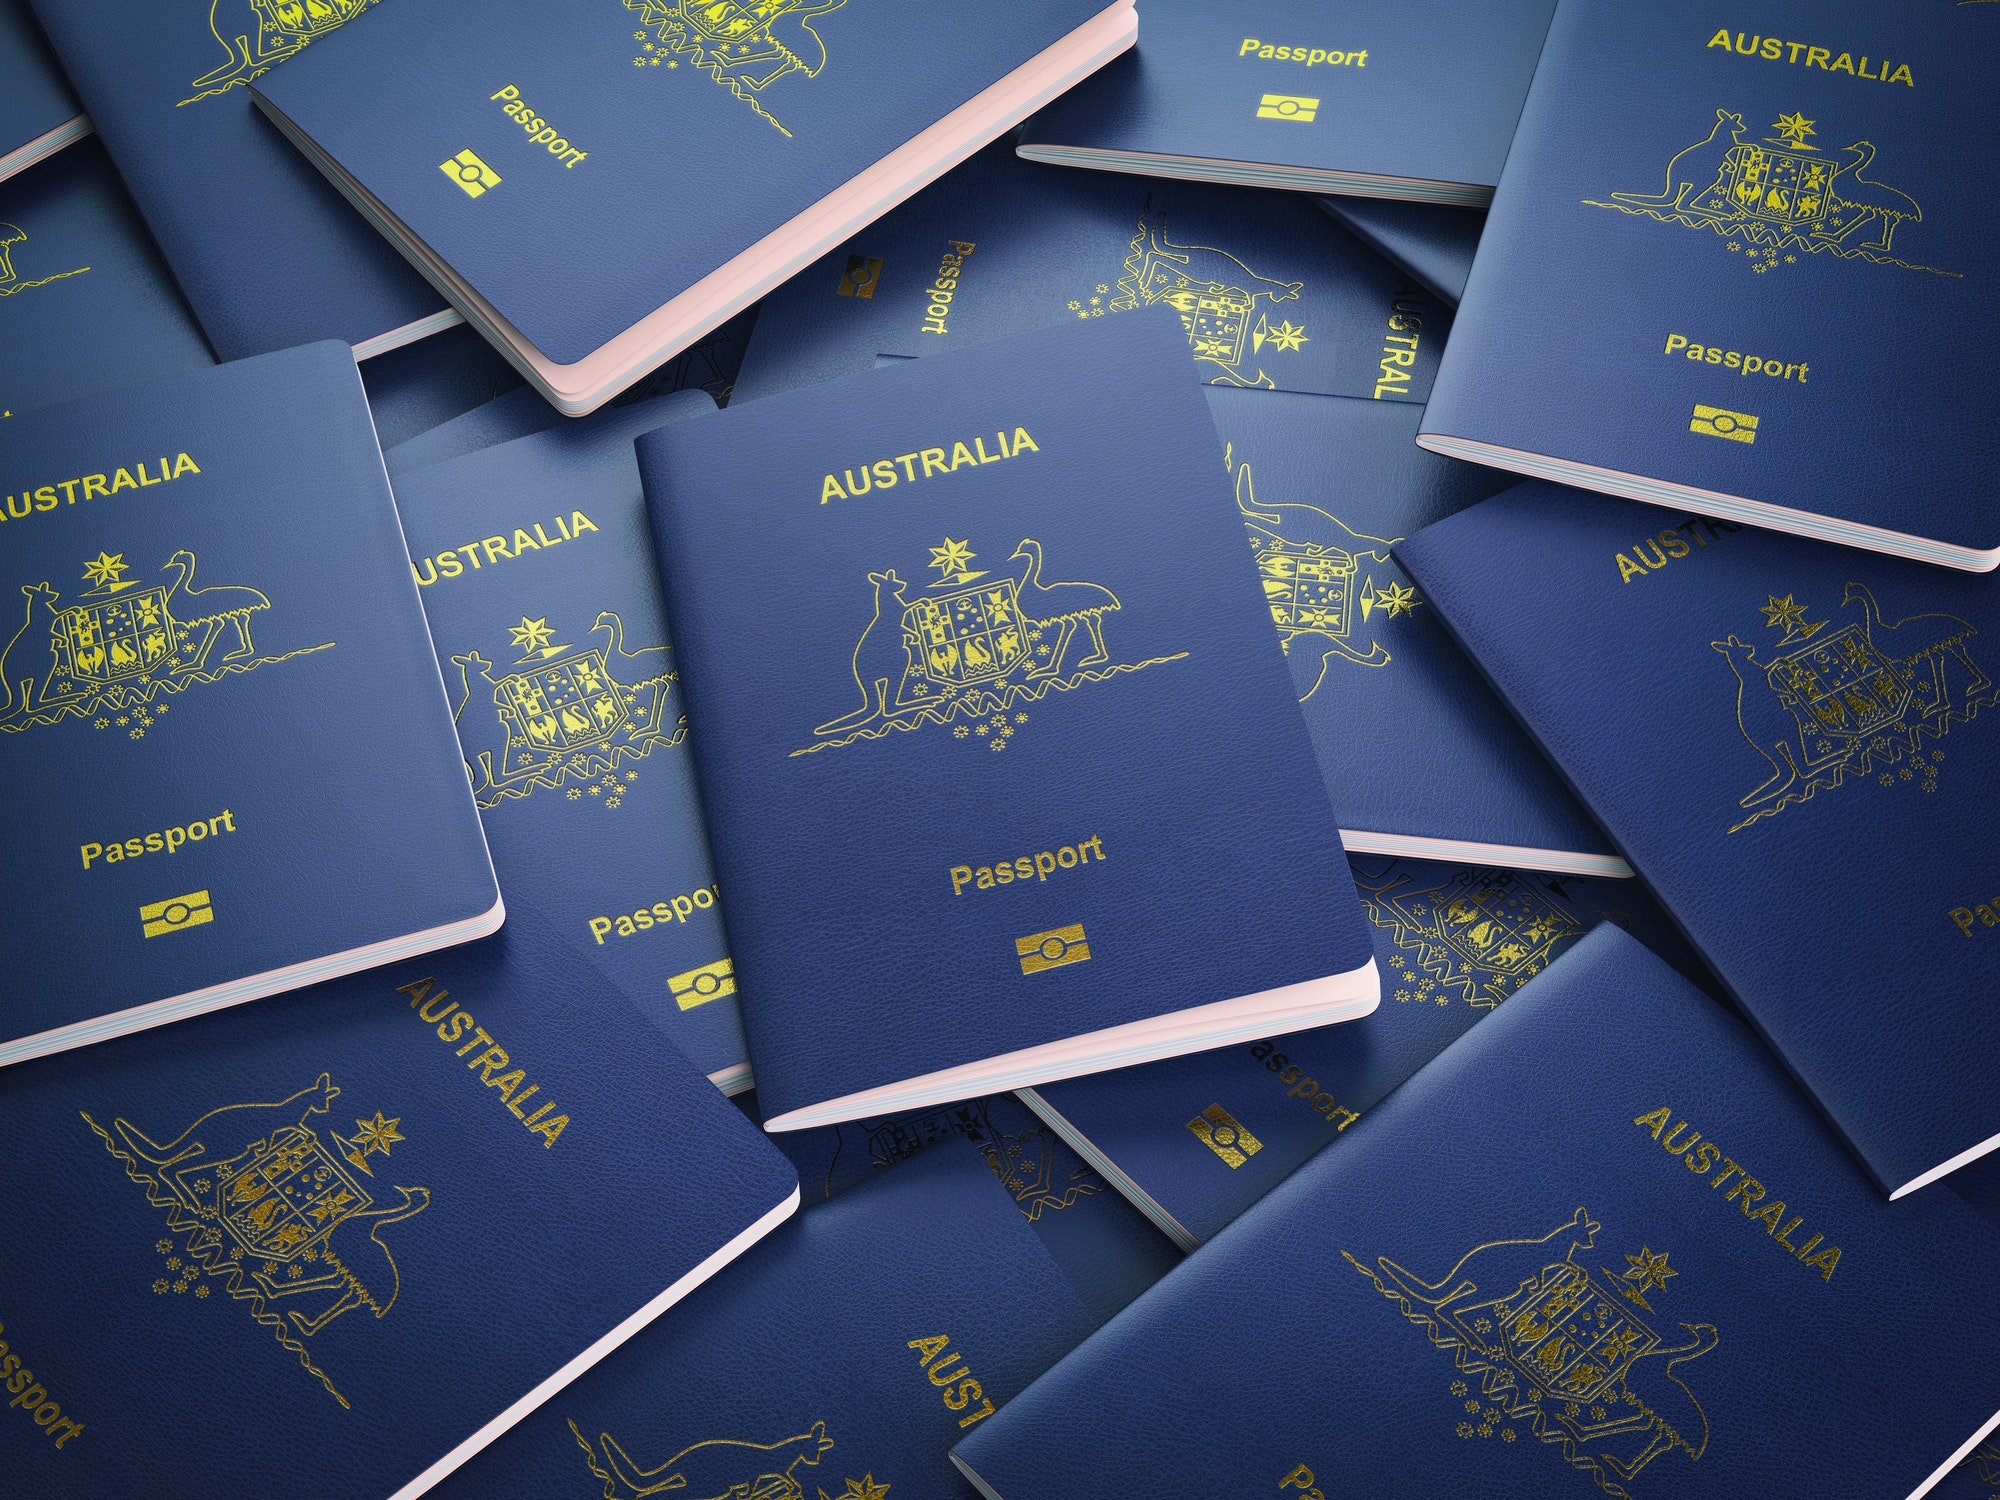 SBS NEWS: Australian visas: What's changing in 2019?